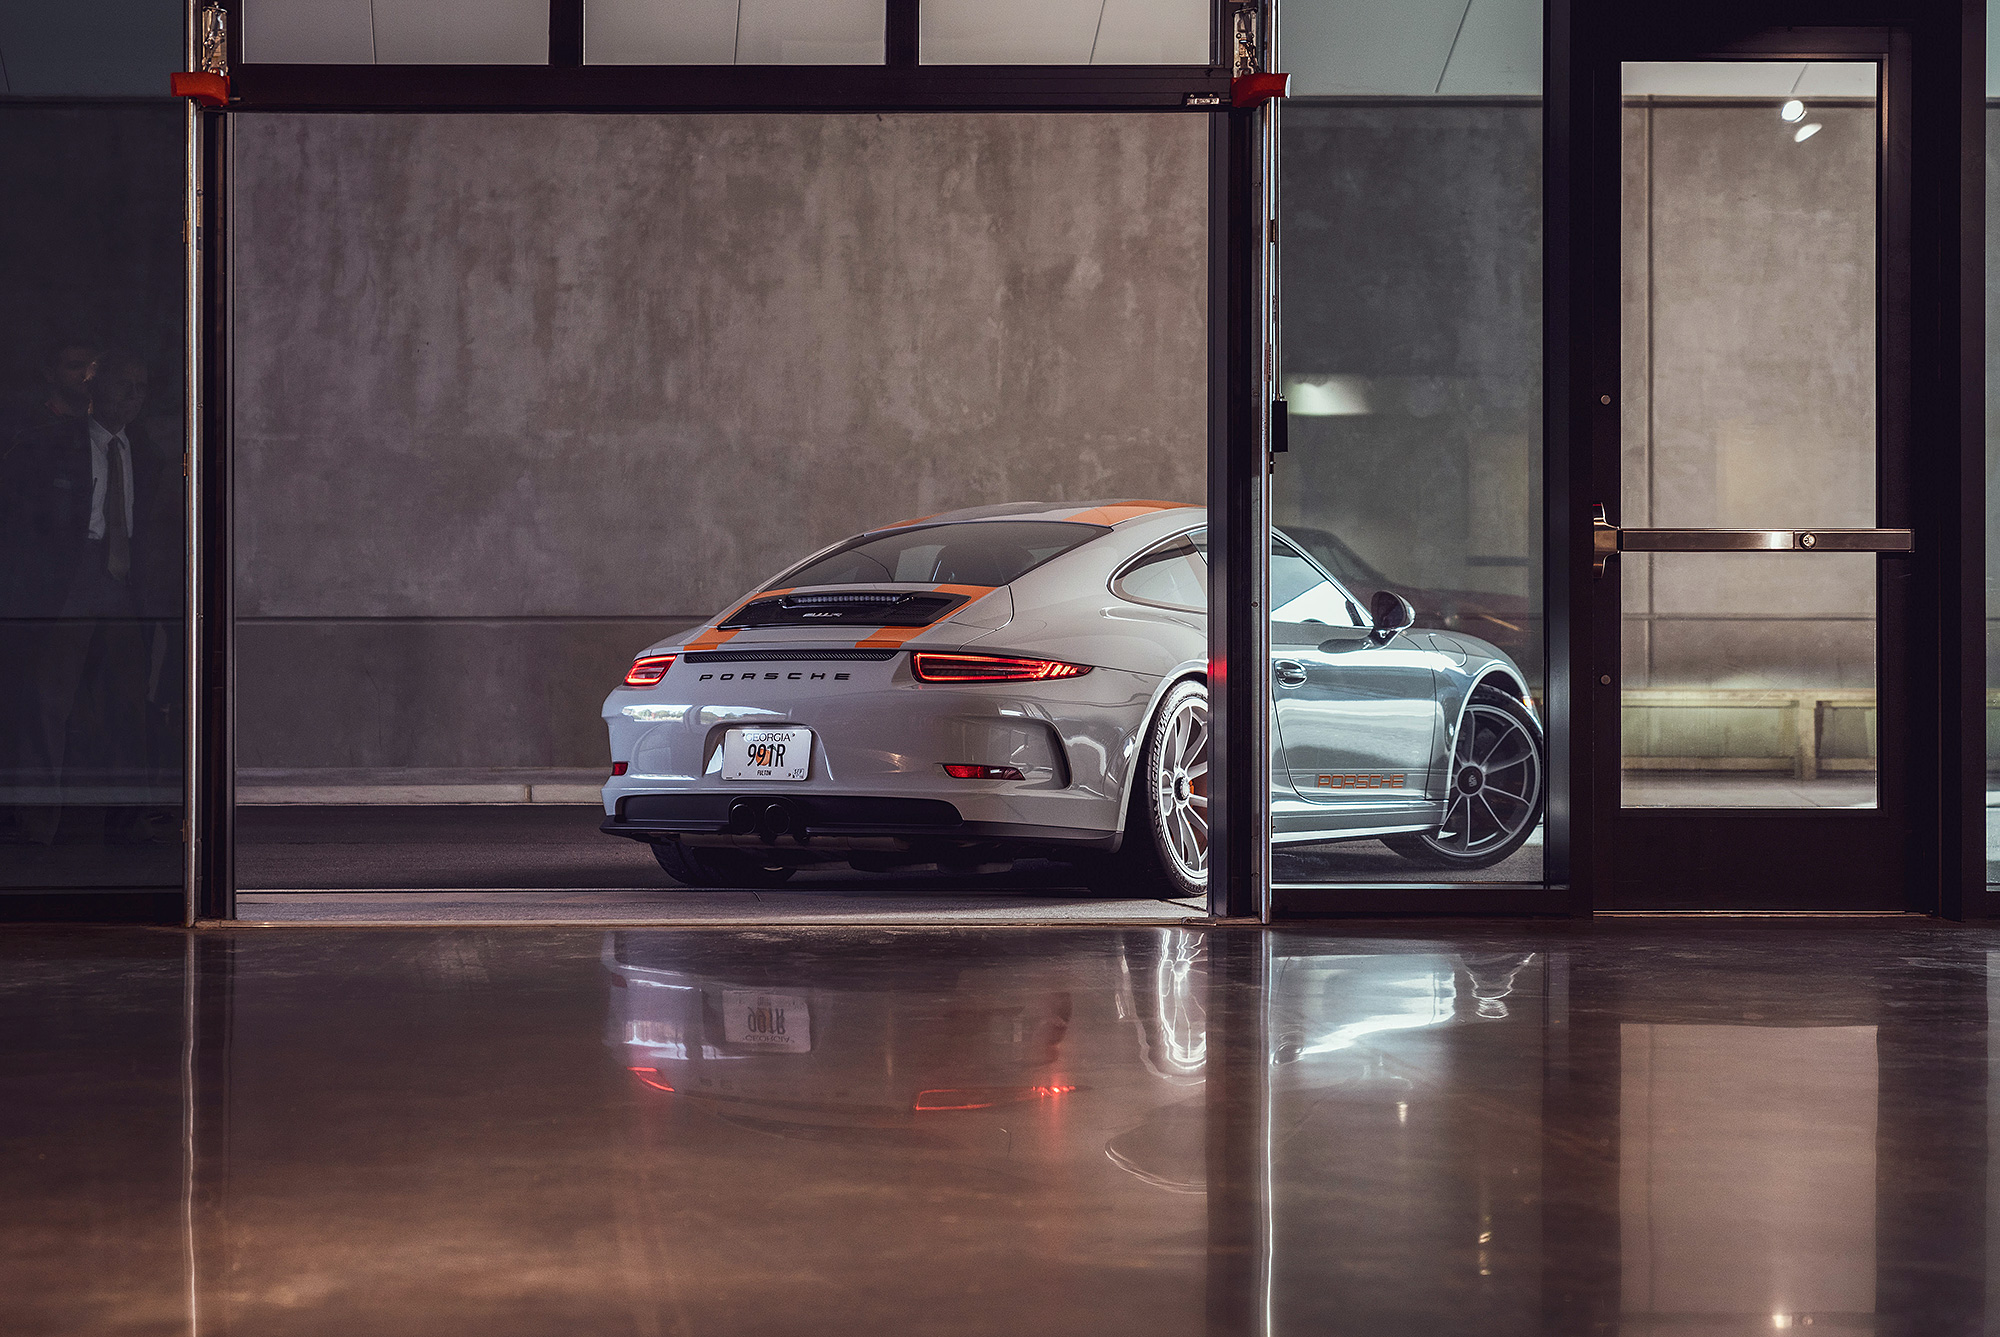 Porsche 911R at headquarters